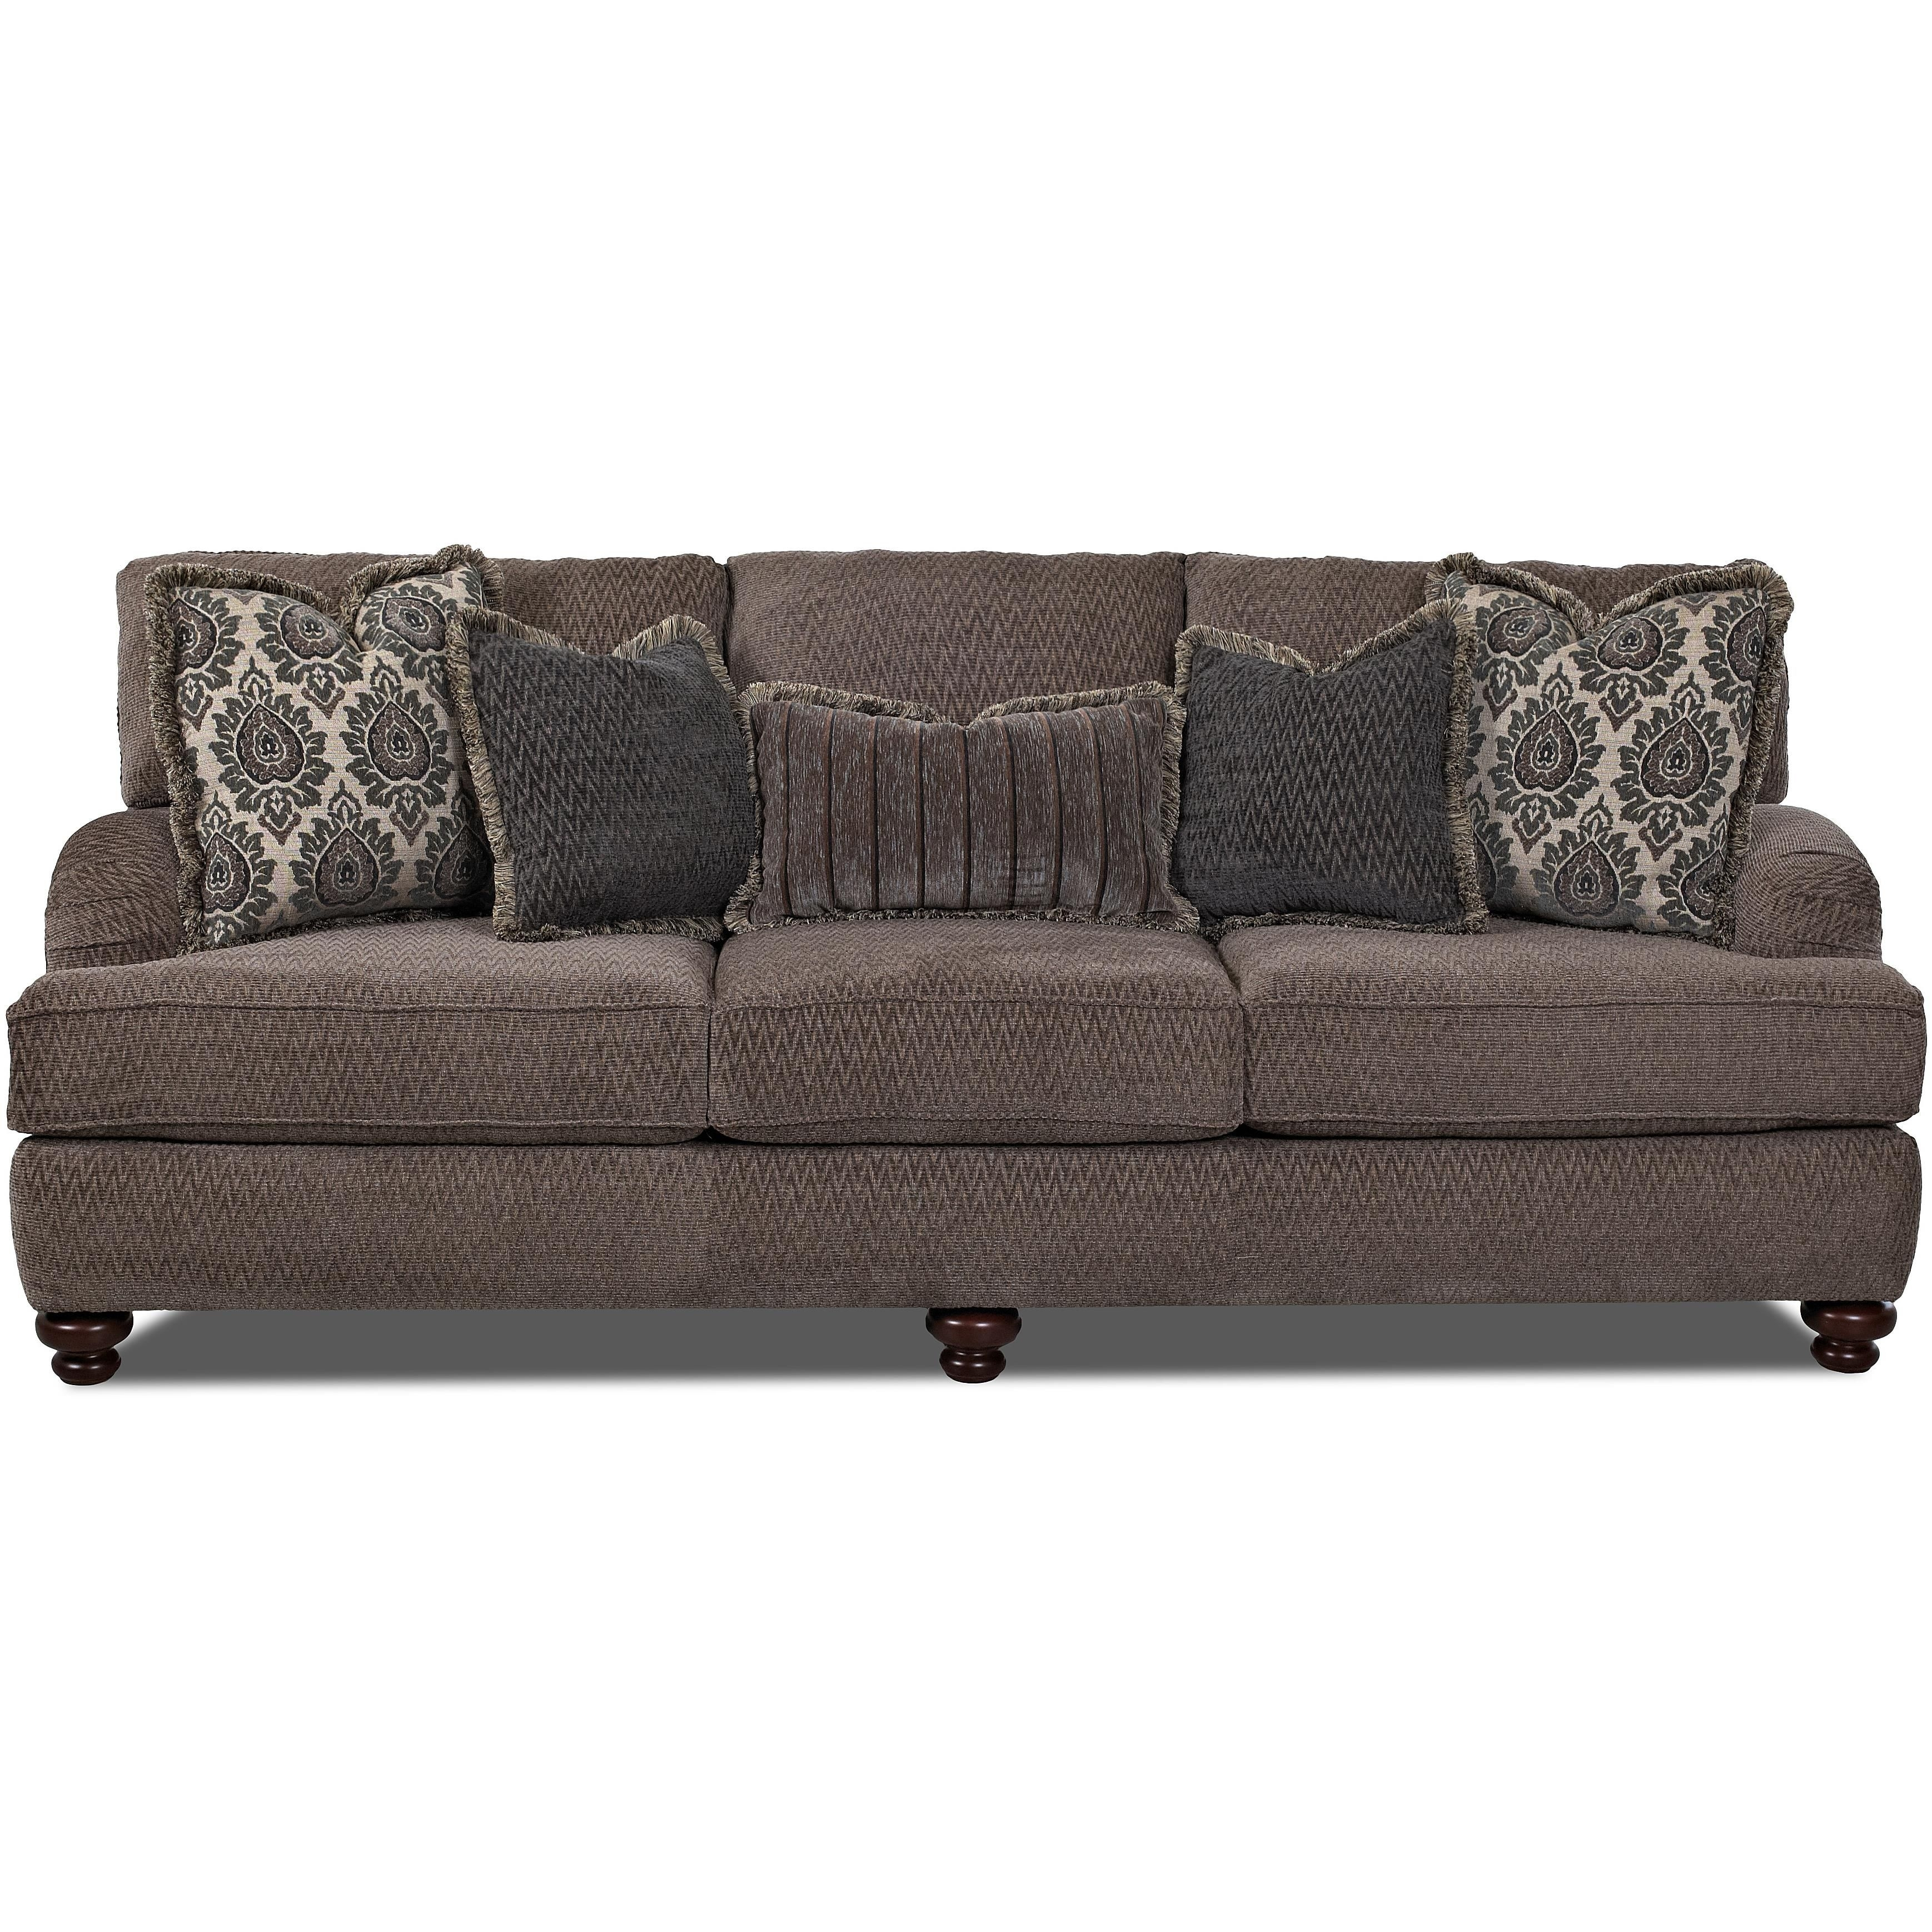 Pinlynea Redman On Living Room | Pinterest | Traditional, Living In Declan 3 Piece Power Reclining Sectionals With Right Facing Console Loveseat (Image 21 of 25)